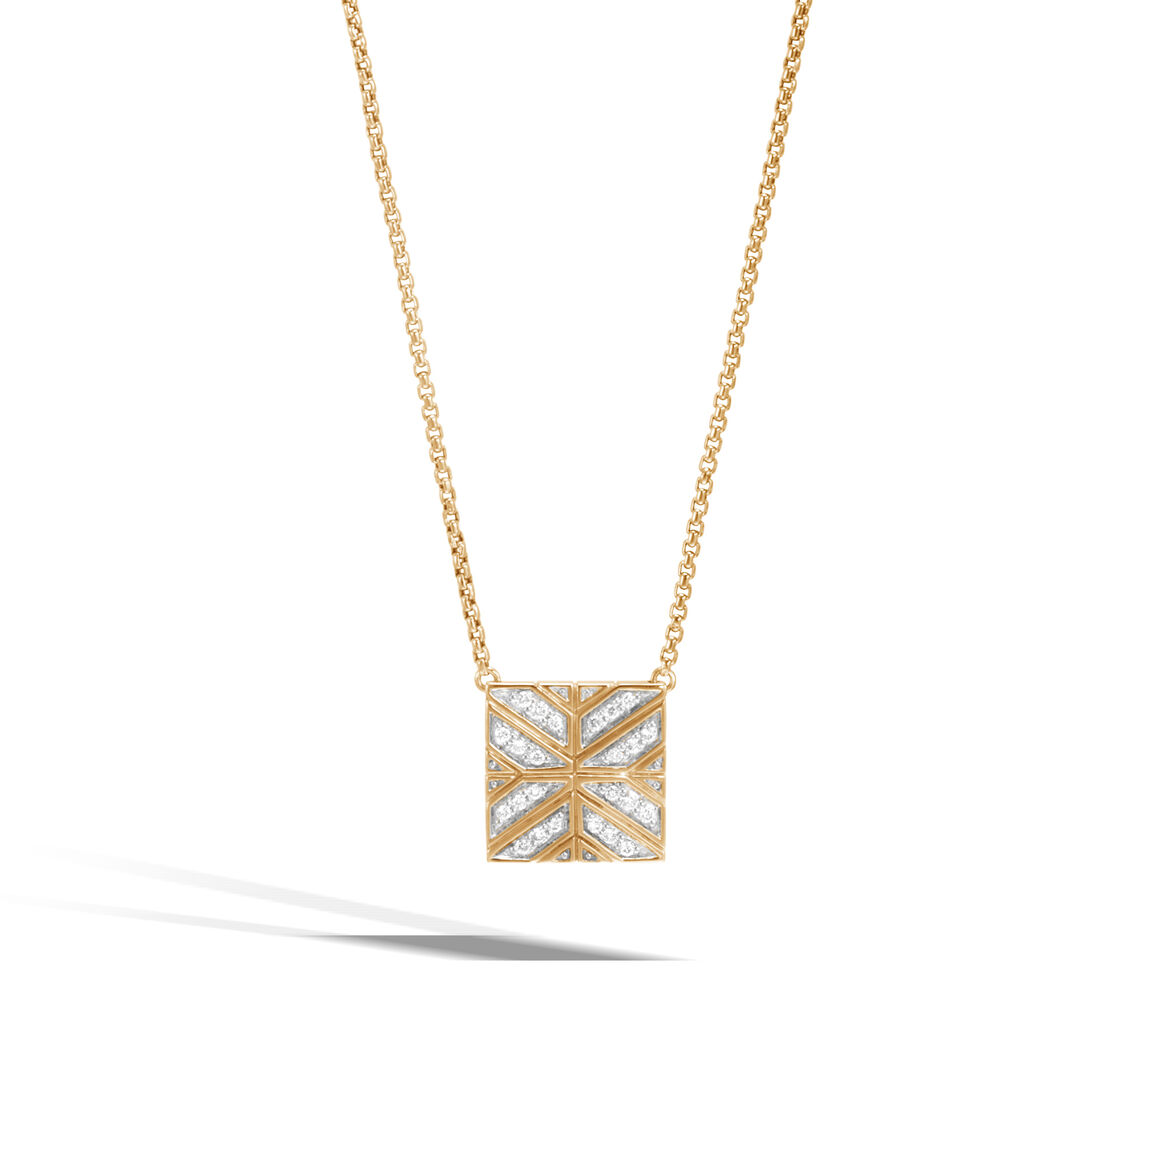 Modern chain pendant necklace in 18k gold with diamonds aloadofball Images